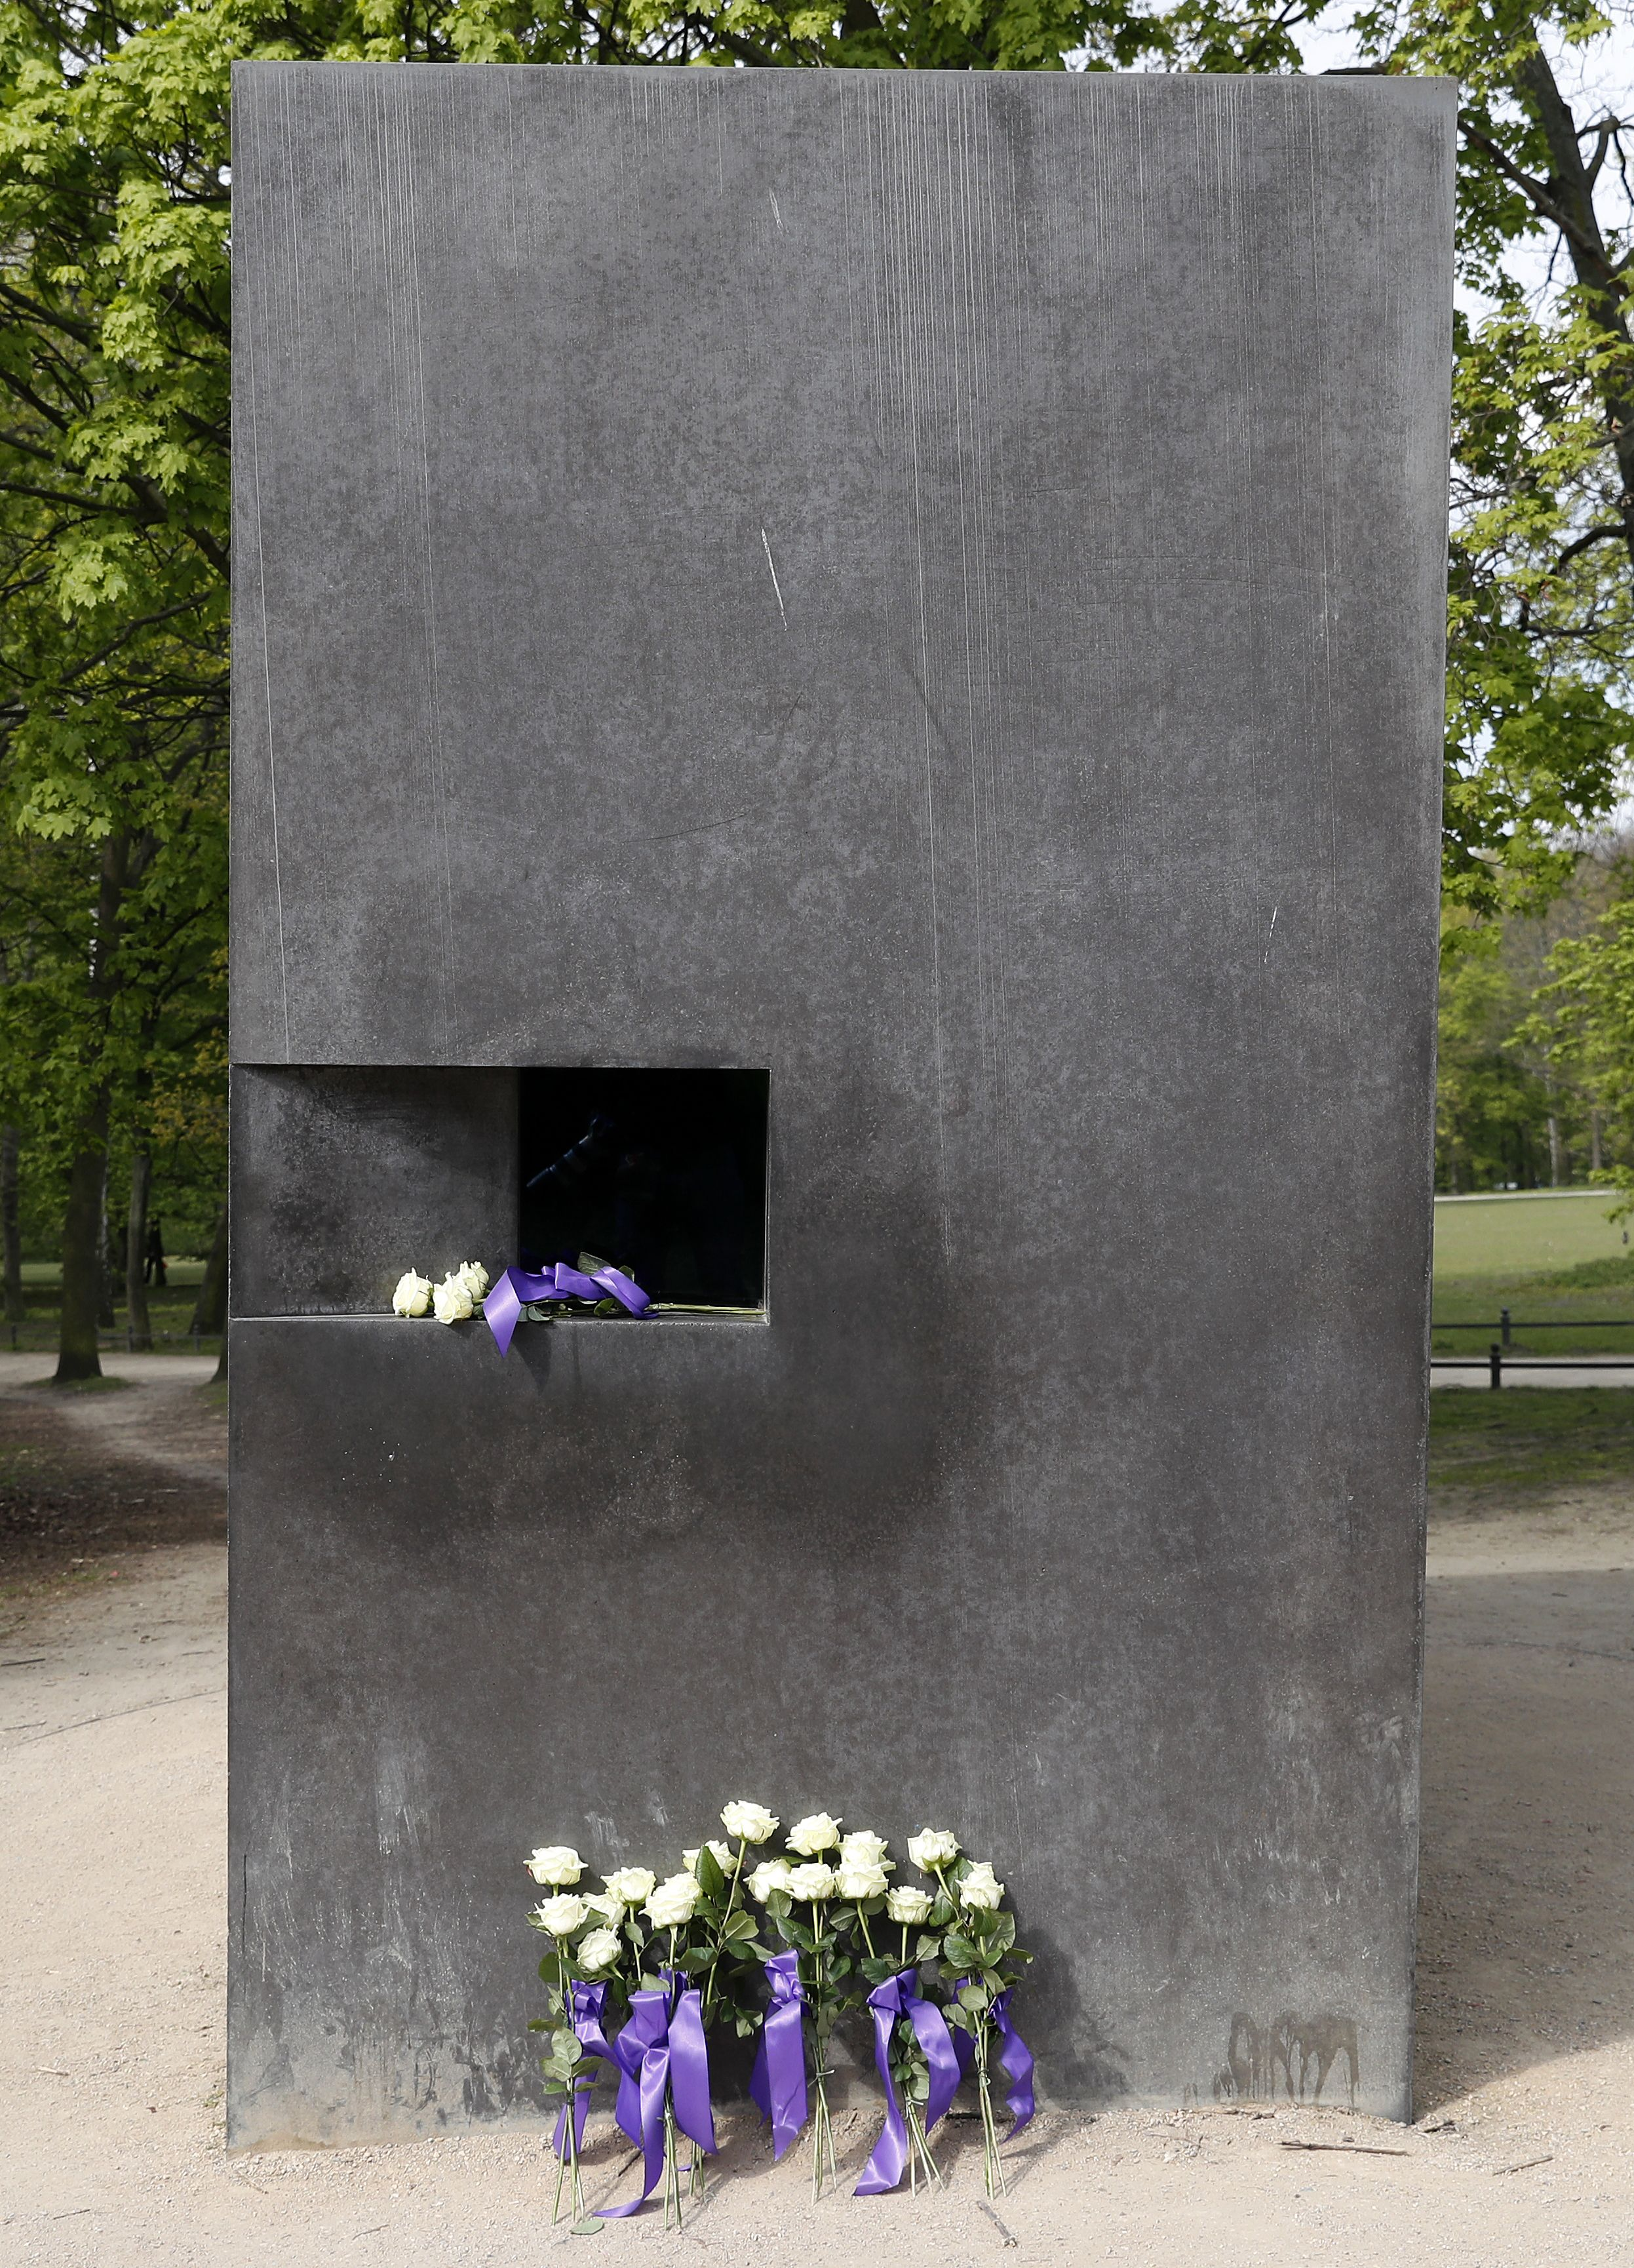 Report: Elmgreen & Dragset's Berlin Monument to Gay Victims of Nazi Persecution Vandalized